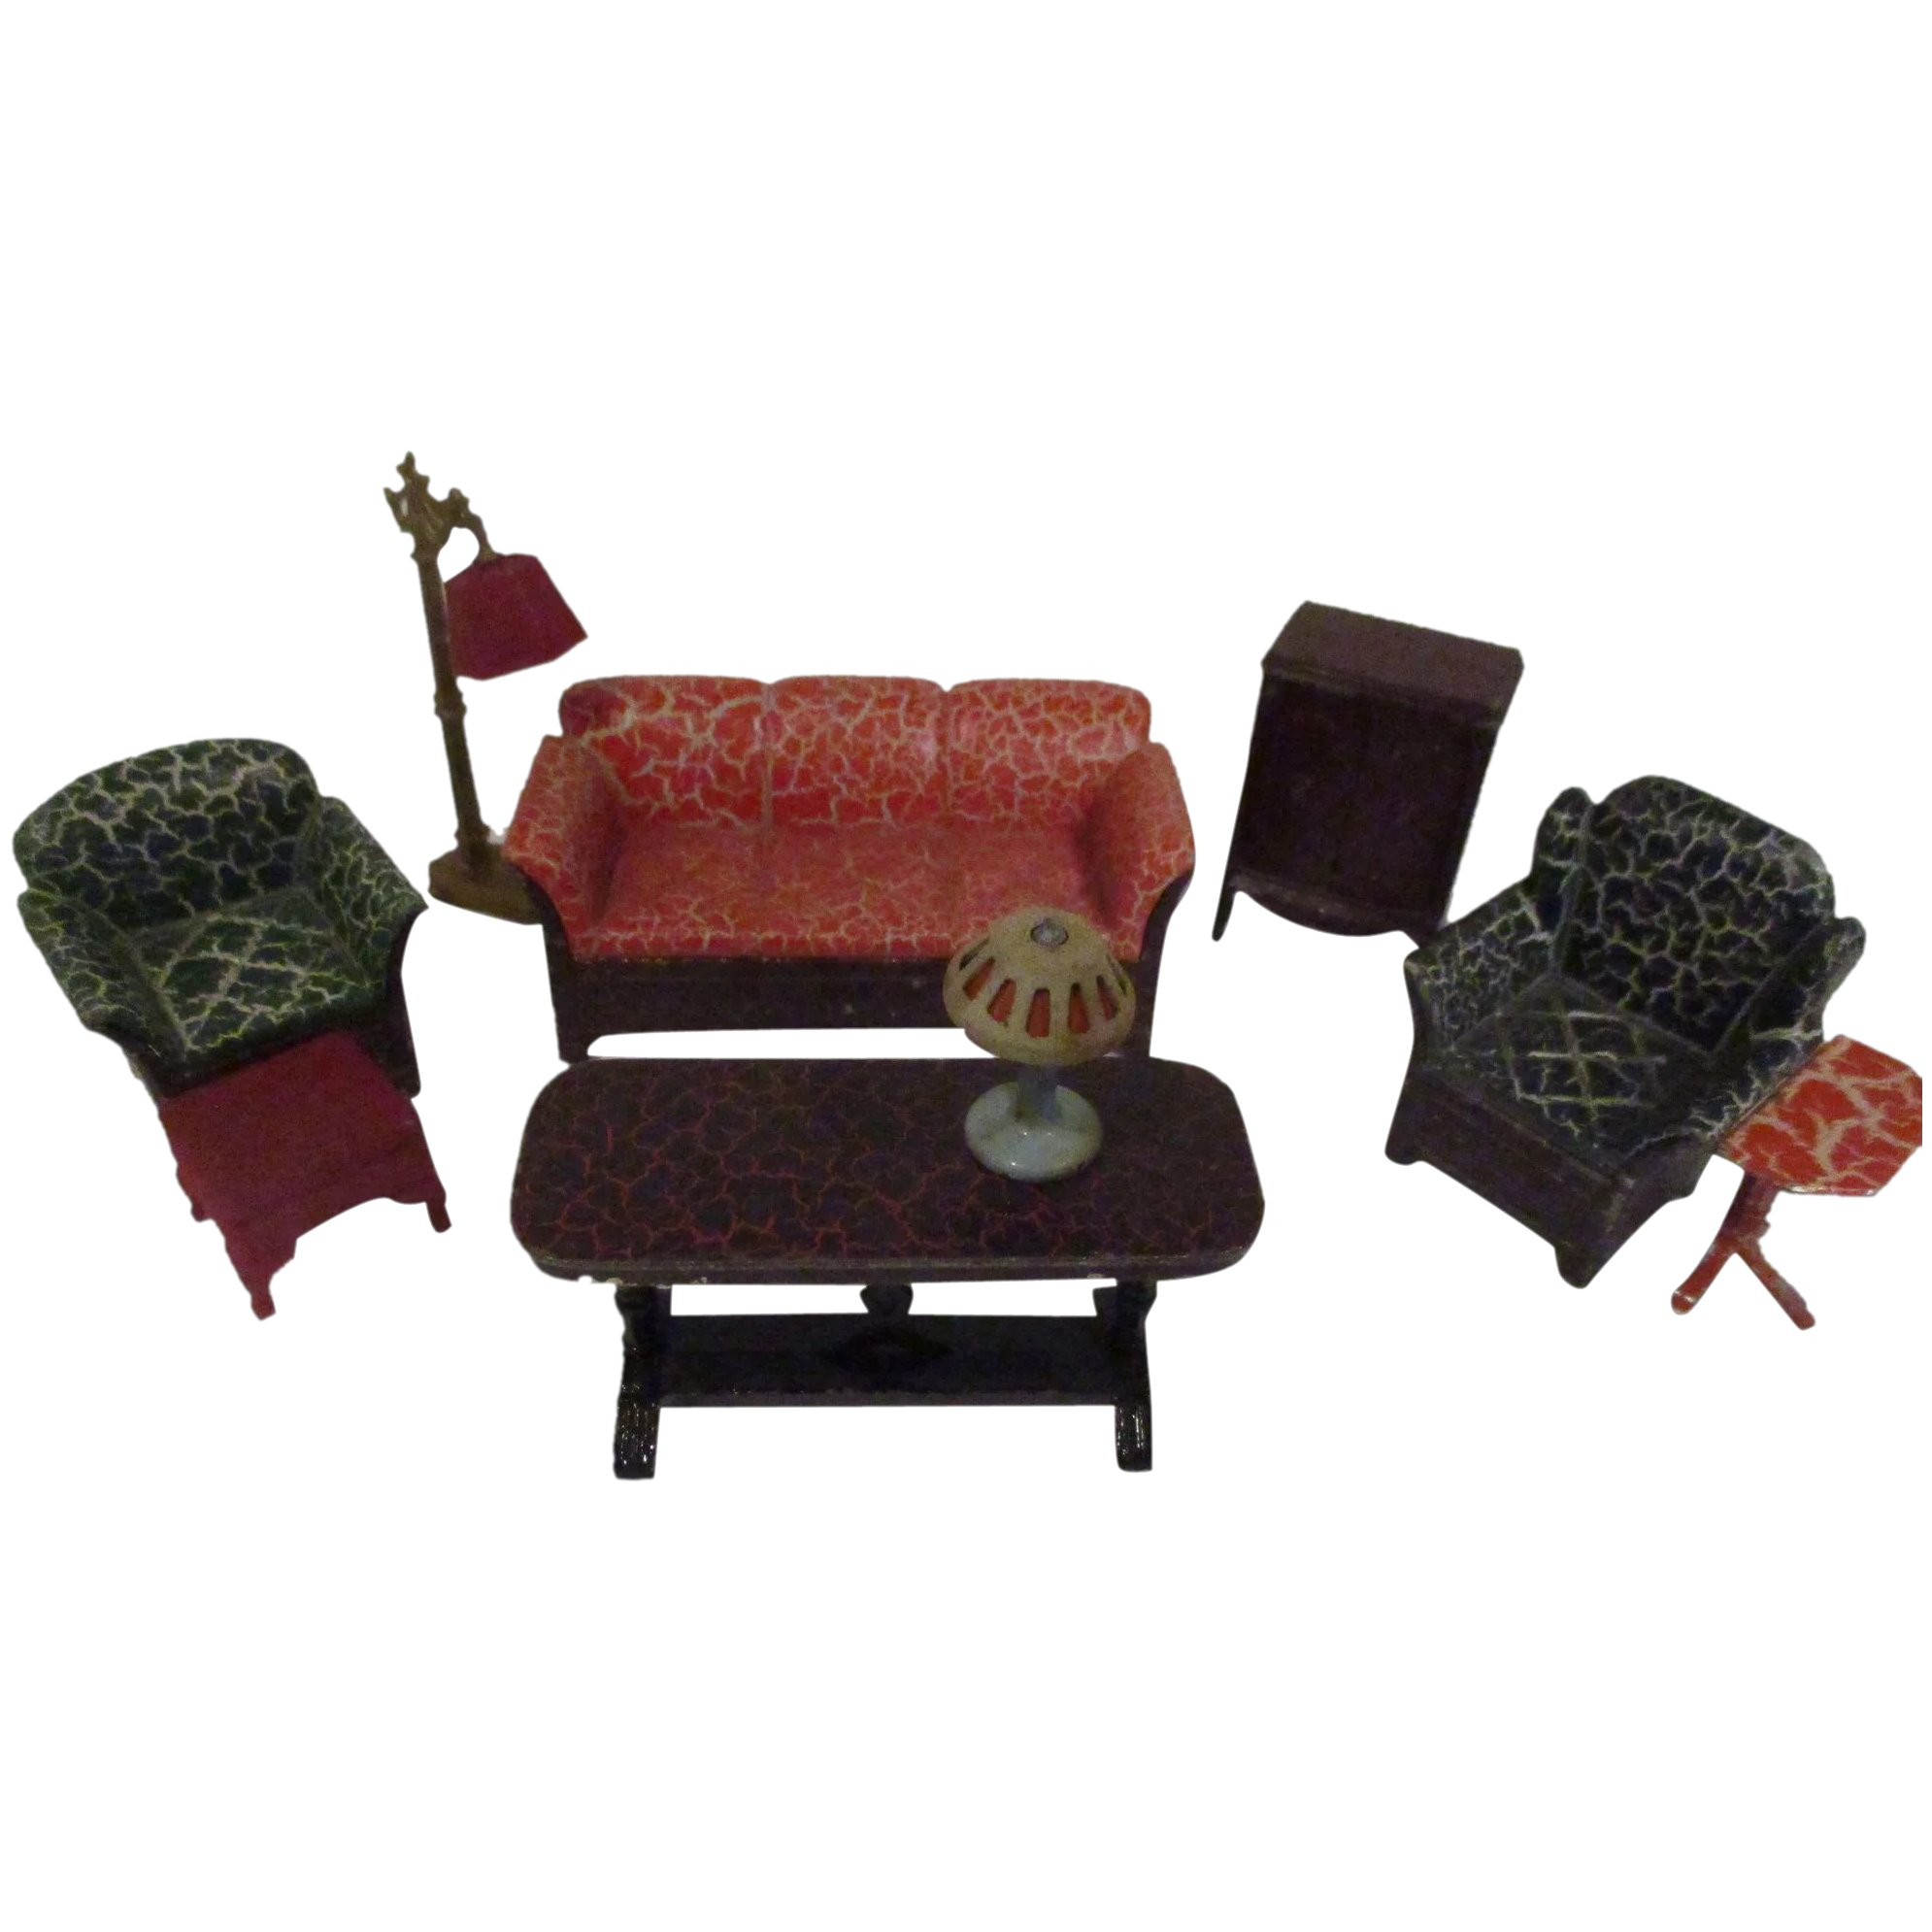 Phenomenal Vintage 1930S Tootsie Toy 9 Piece Living Room Doll House Furniture Set Ncnpc Chair Design For Home Ncnpcorg